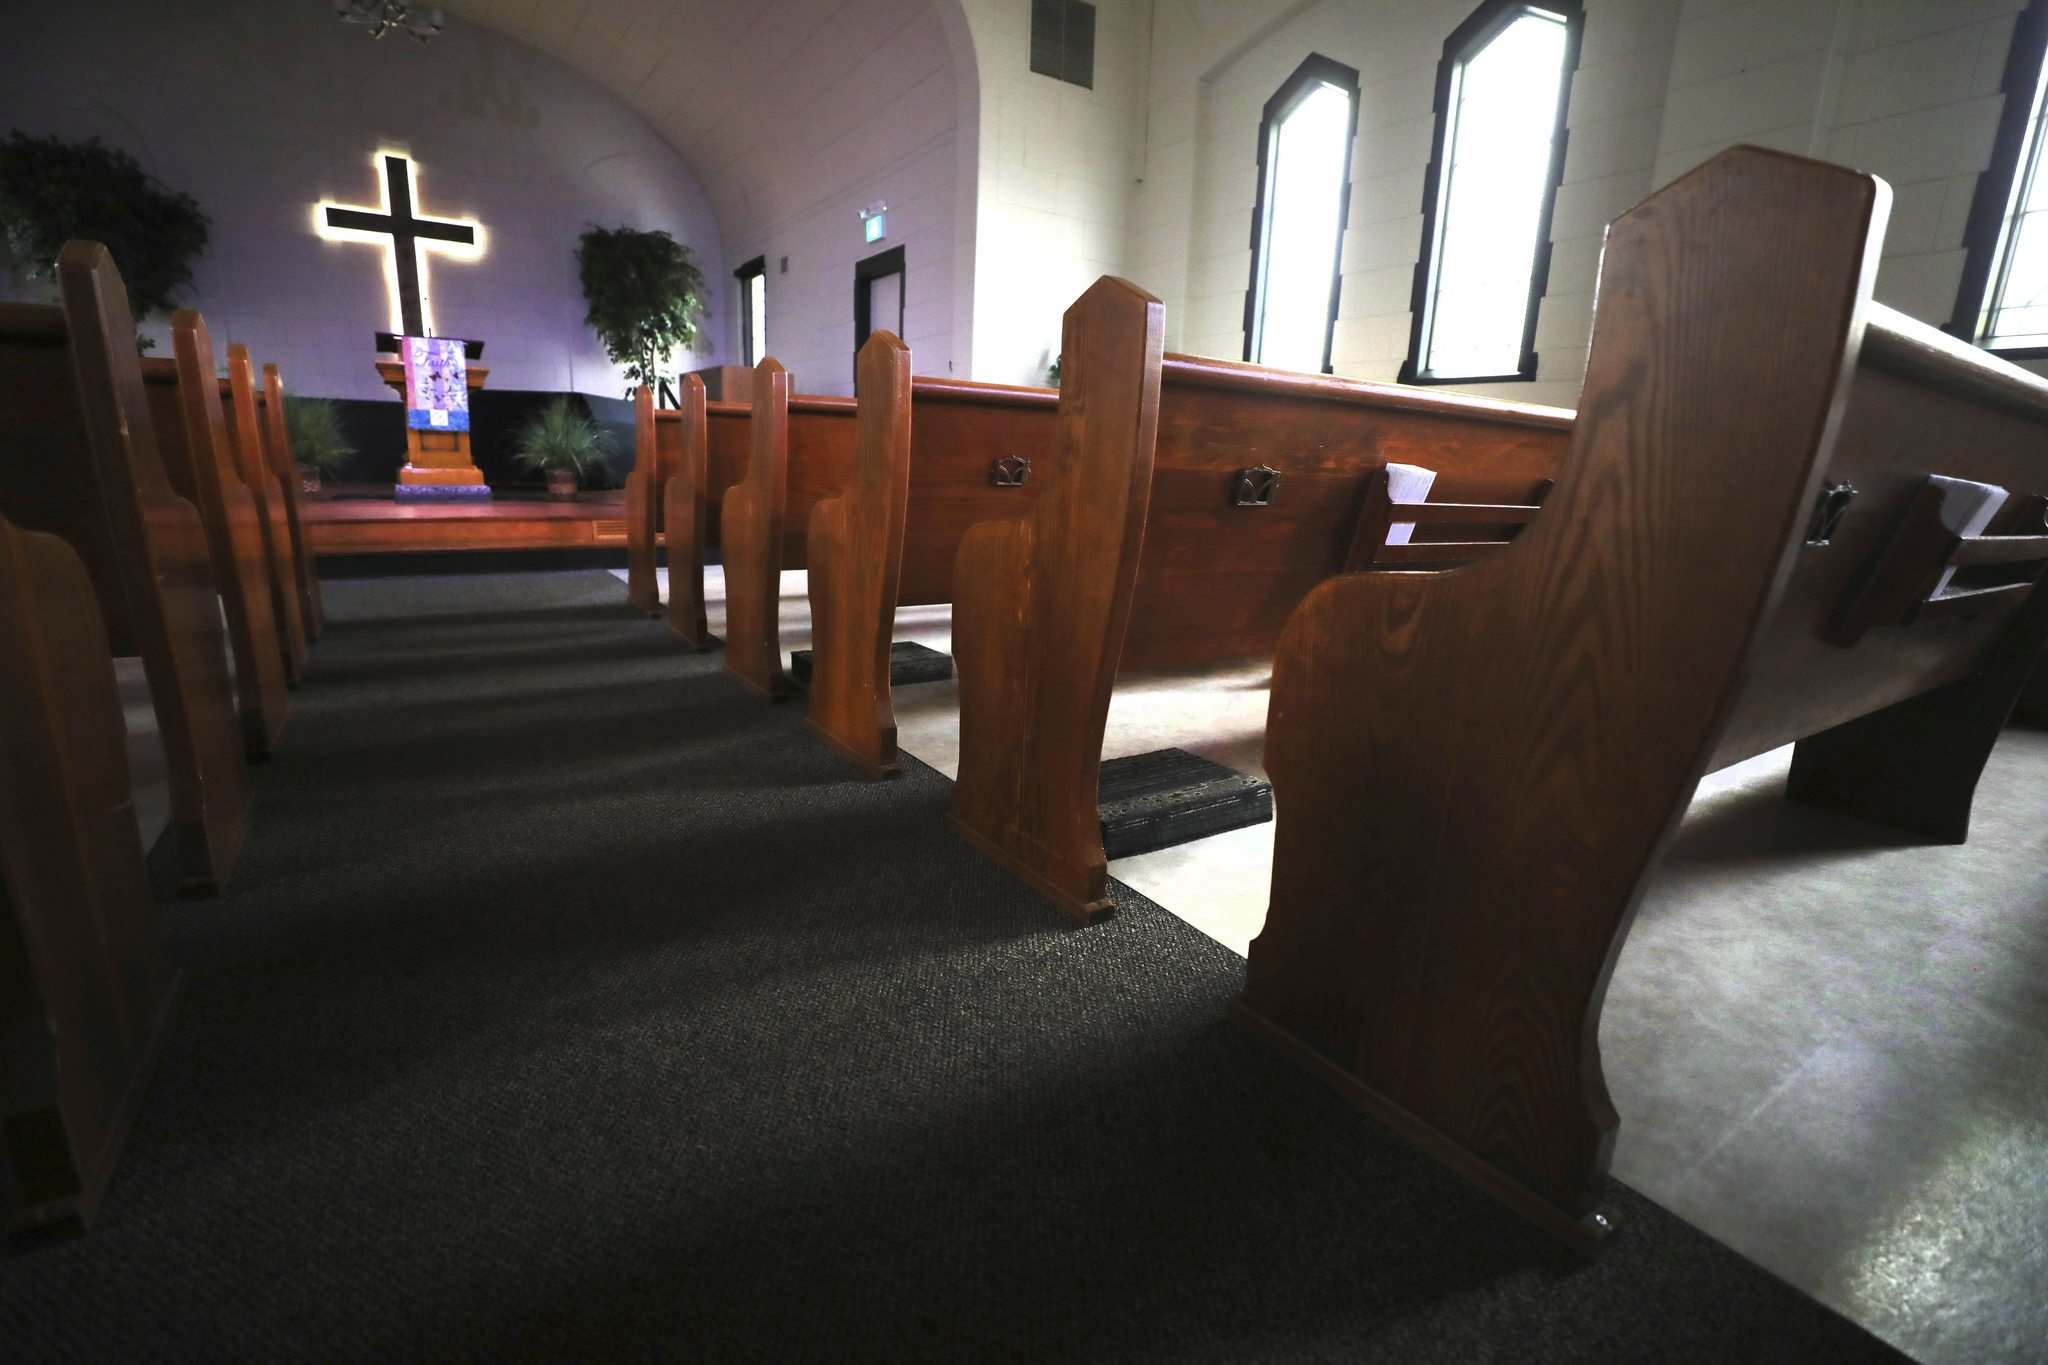 Indoor gathering in churches, many of which do not have good ventilation, is one of the riskier situations according to local epidemiologist Cynthia Carr. (Ruth Bonneville / Winnipeg Free Press files)